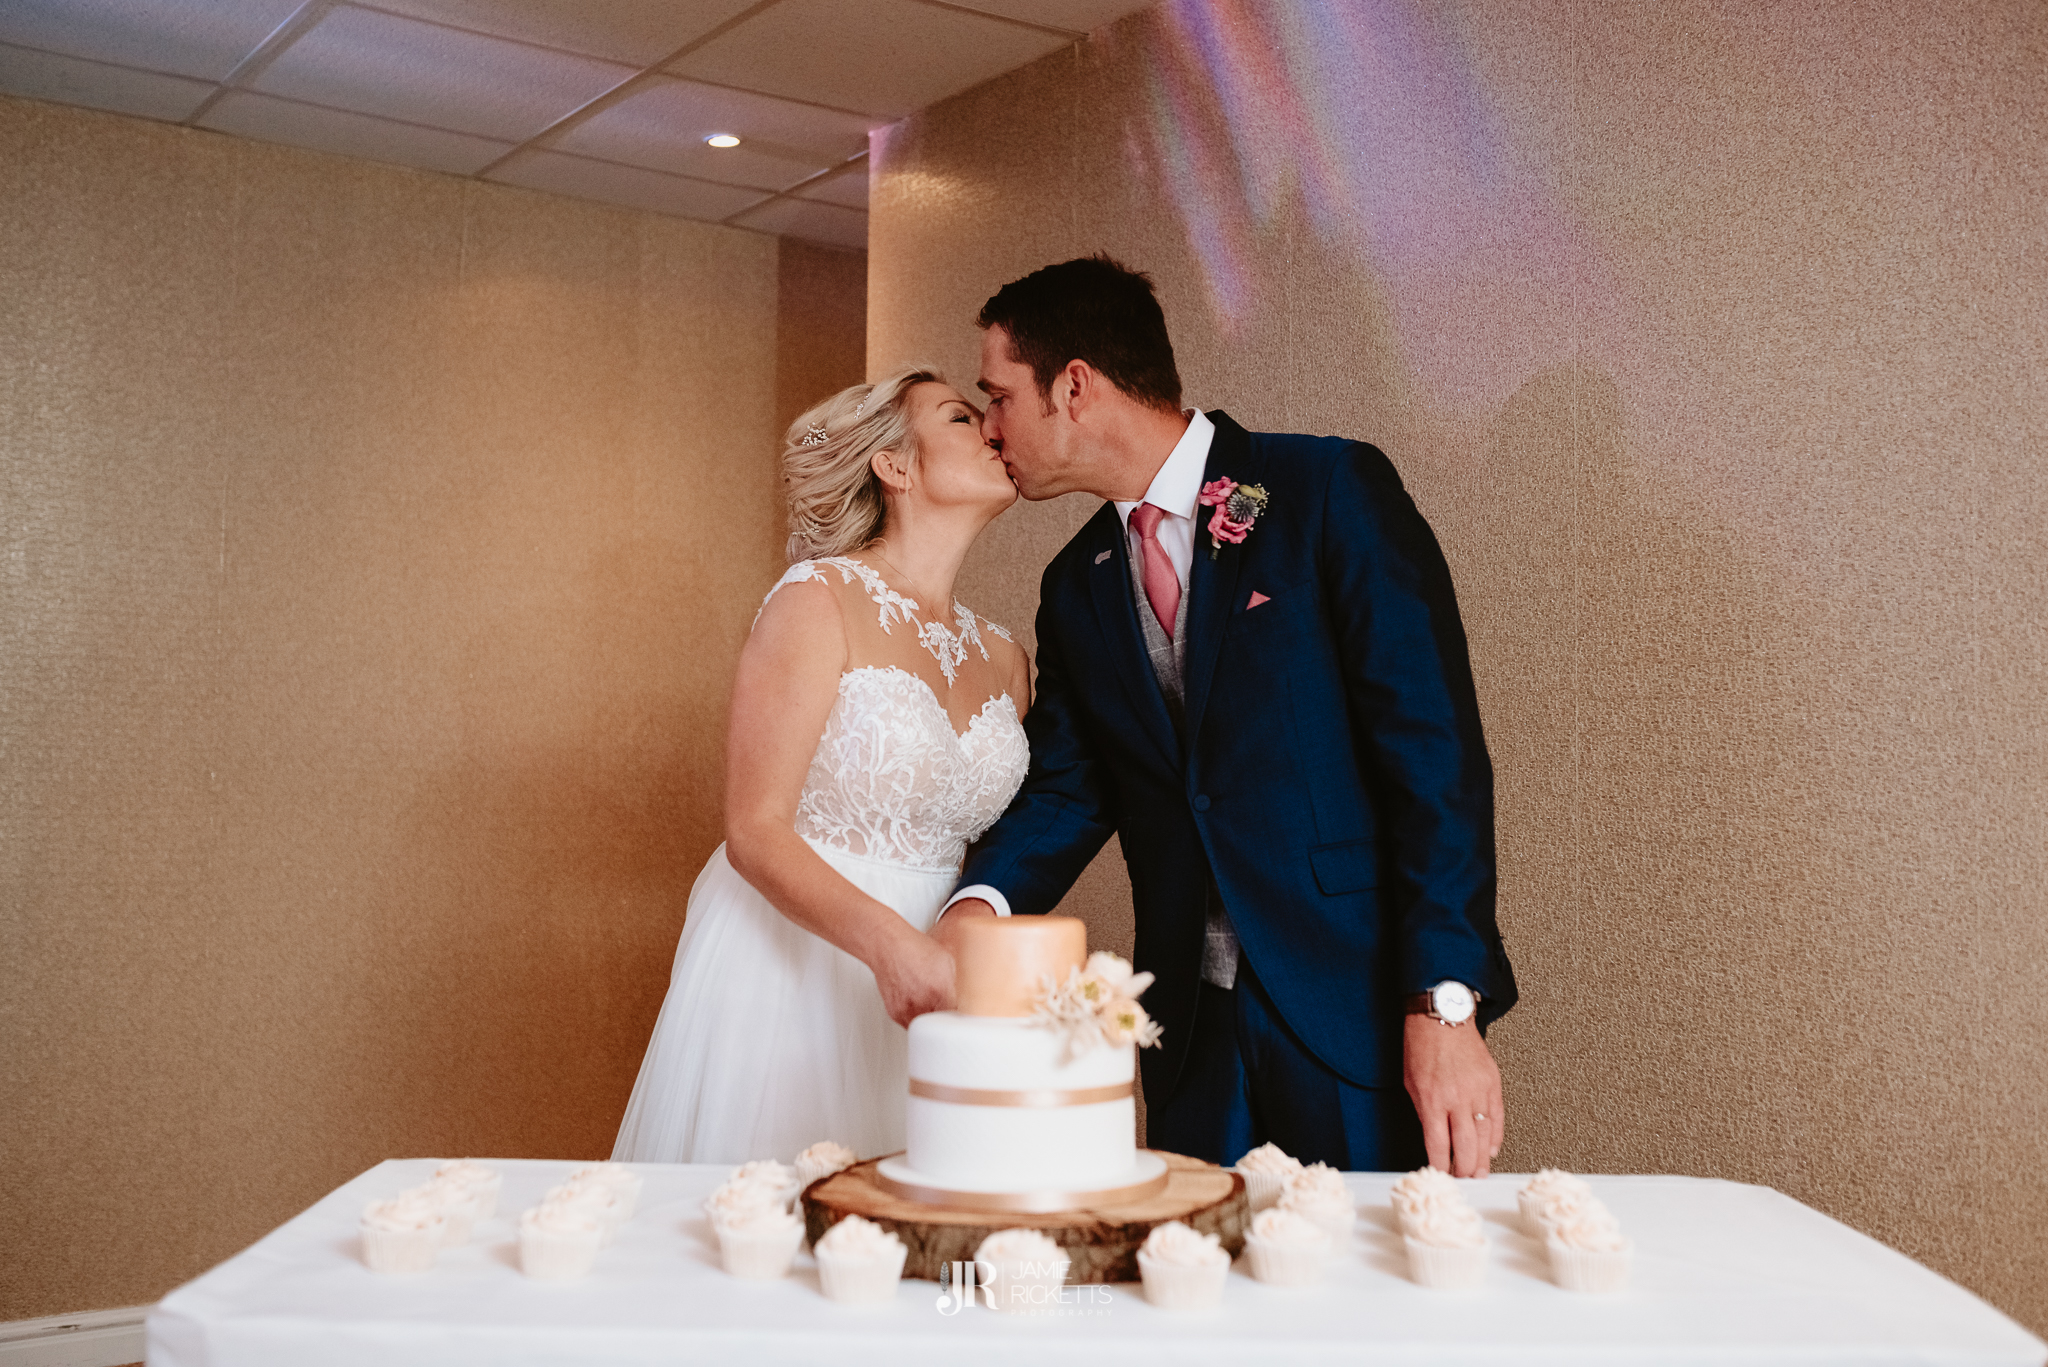 Wroxeter-Hotel-Wedding-Photography-In-Shropshire-By-Shropshire-Wedding-Photographer-Jamie-Ricketts-207.JPG